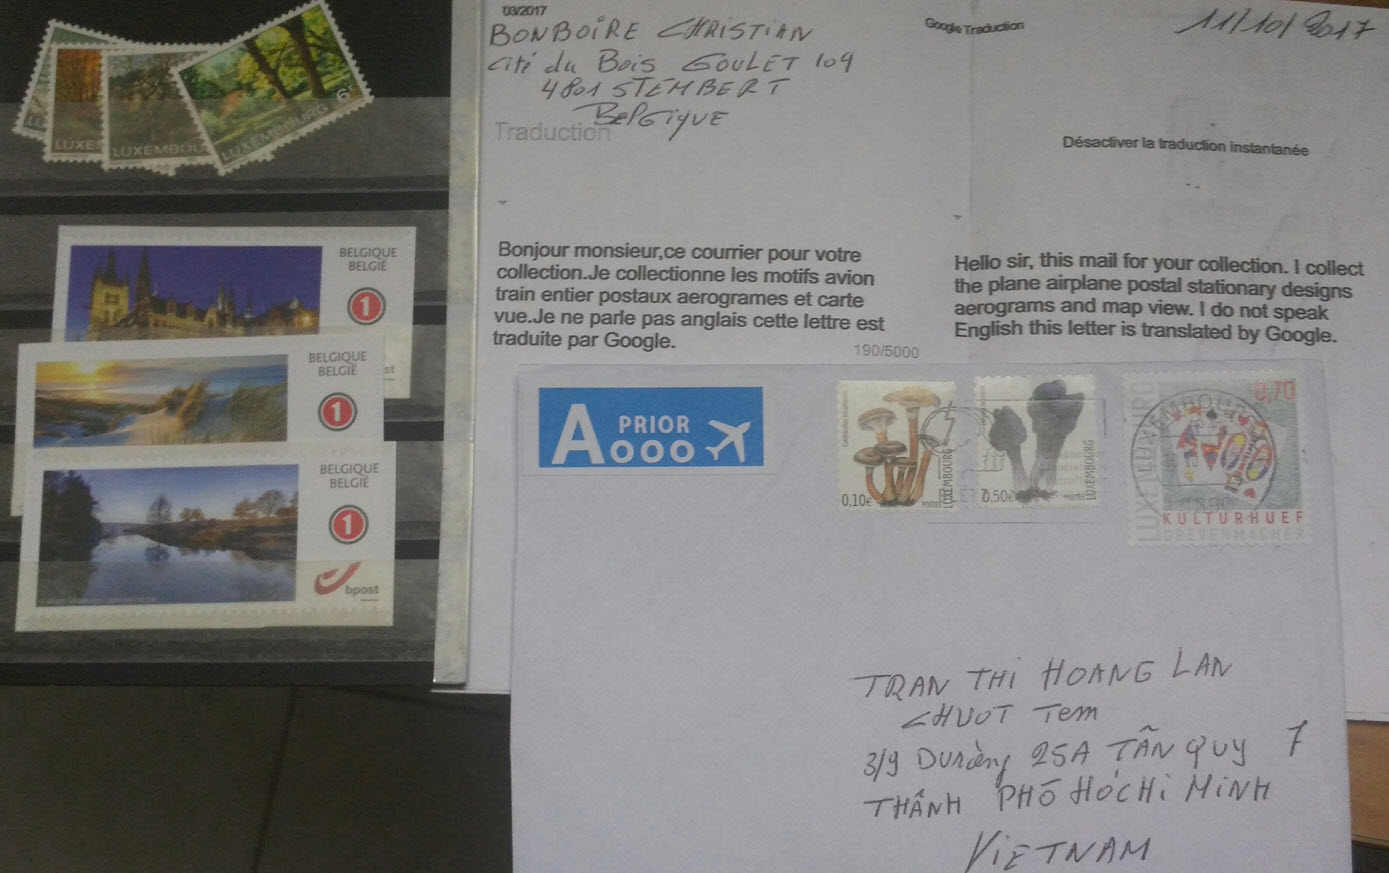 [BELGIUM-4801] First contact letter